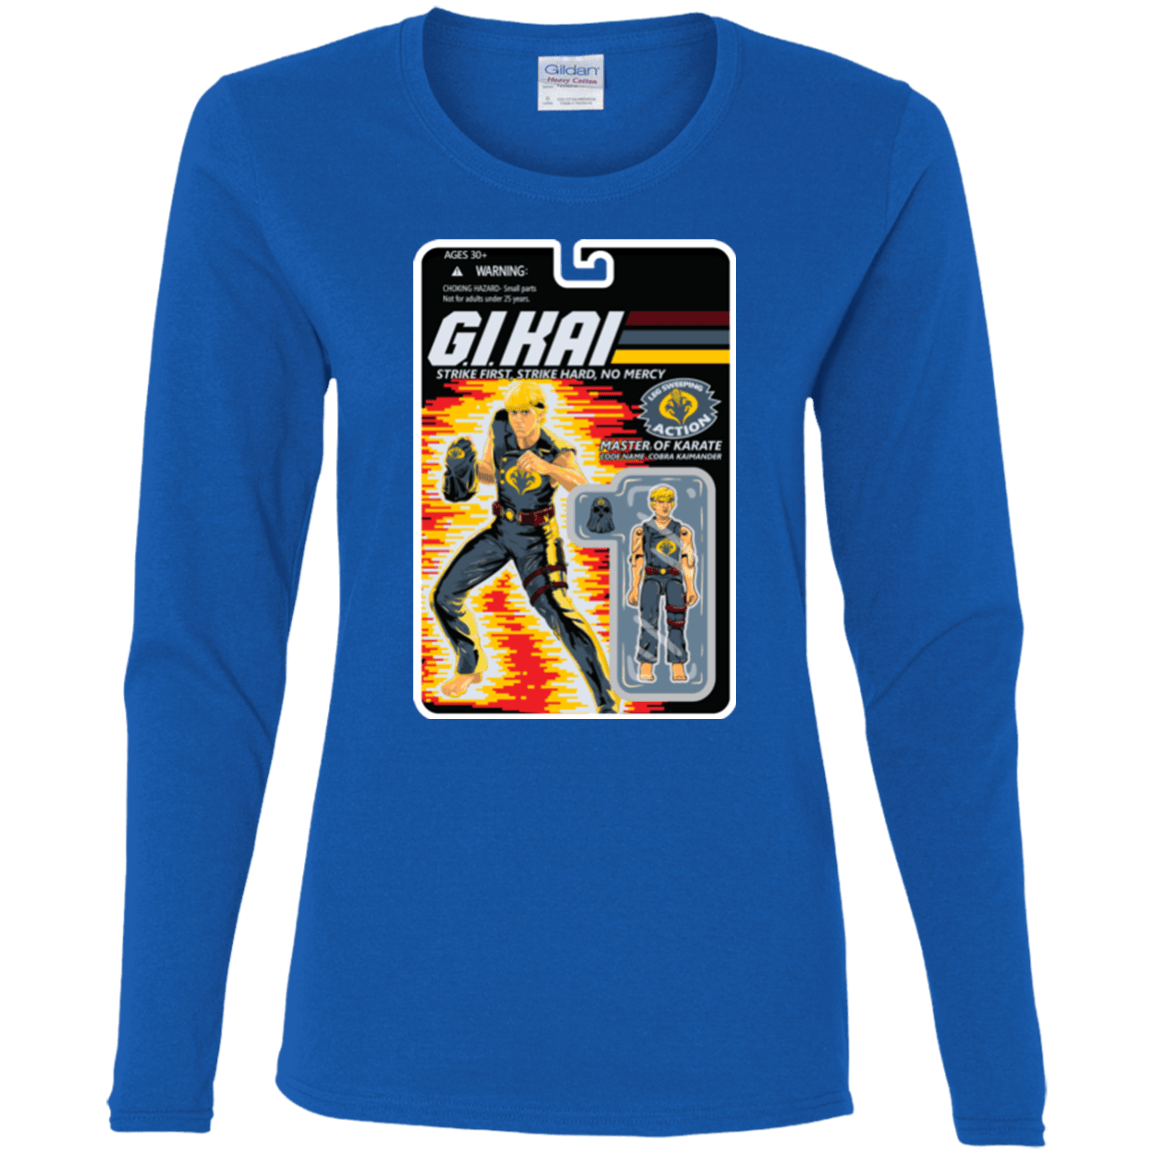 T-Shirts Royal / S GI KAI Women's Long Sleeve T-Shirt